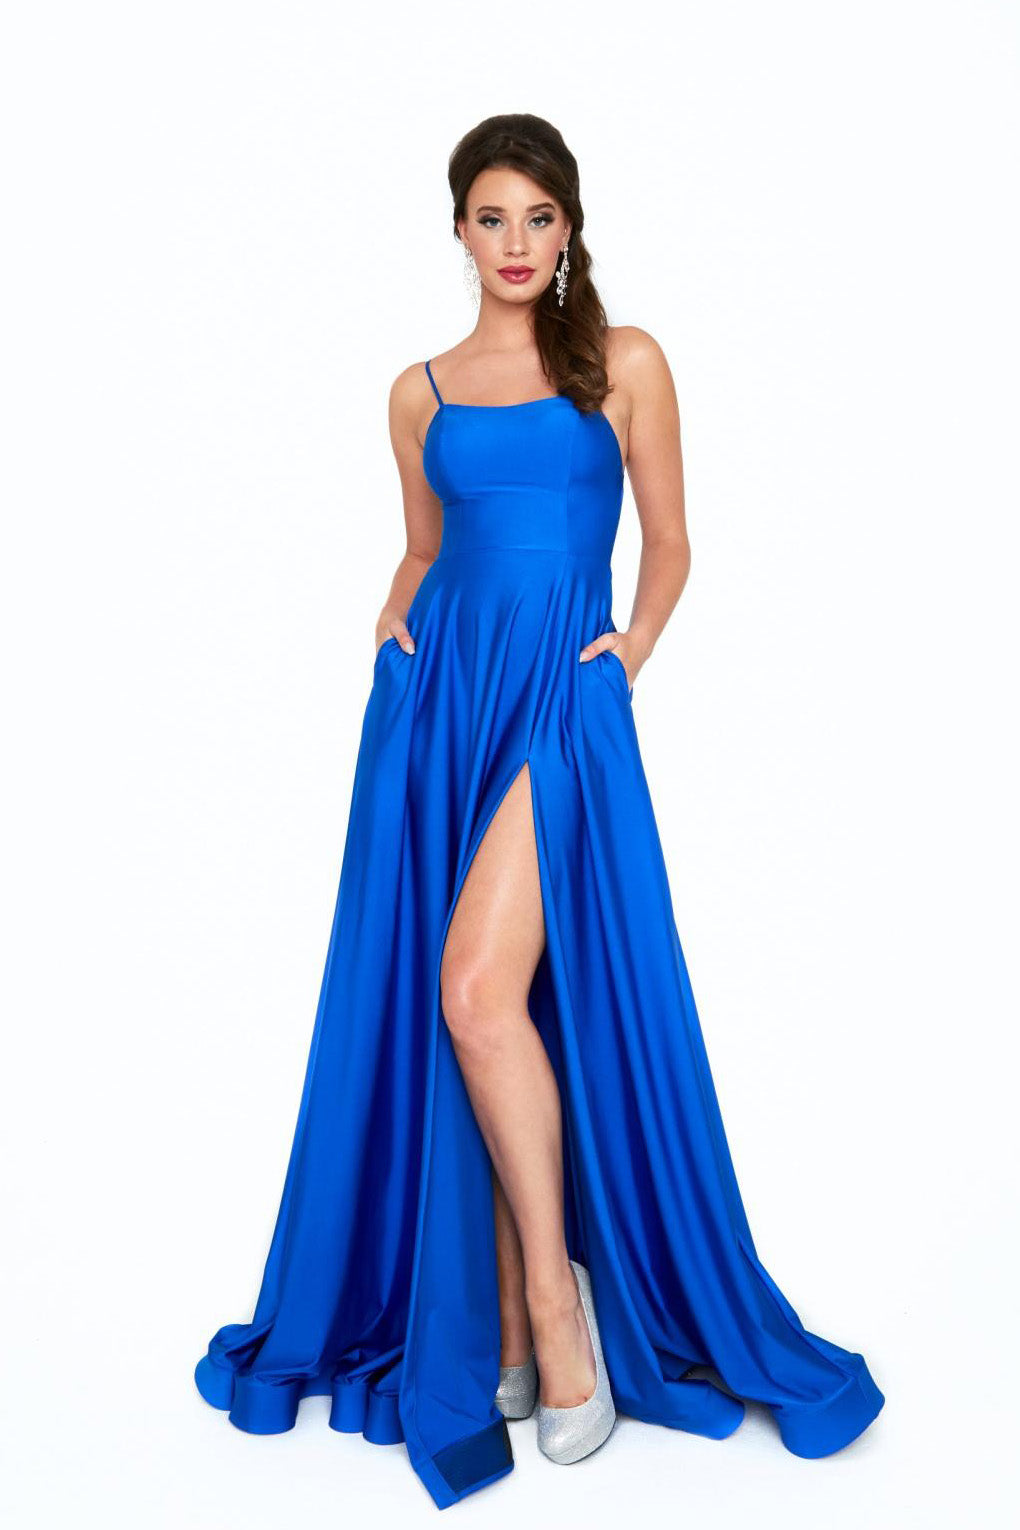 Atria 6521h royal blue prom dress